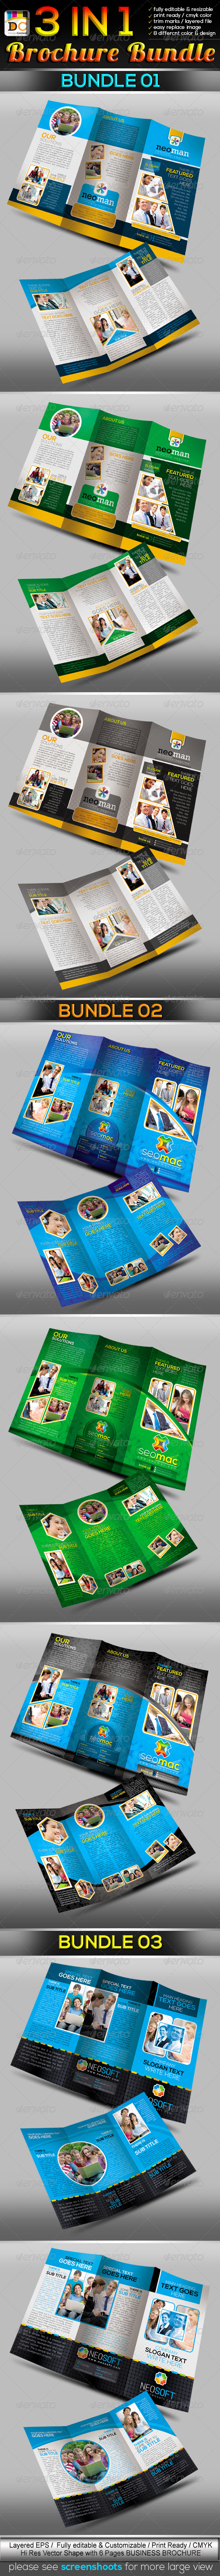 3 in 1: Corporate Tri-fold Business Brochure Bundl - Corporate Brochures